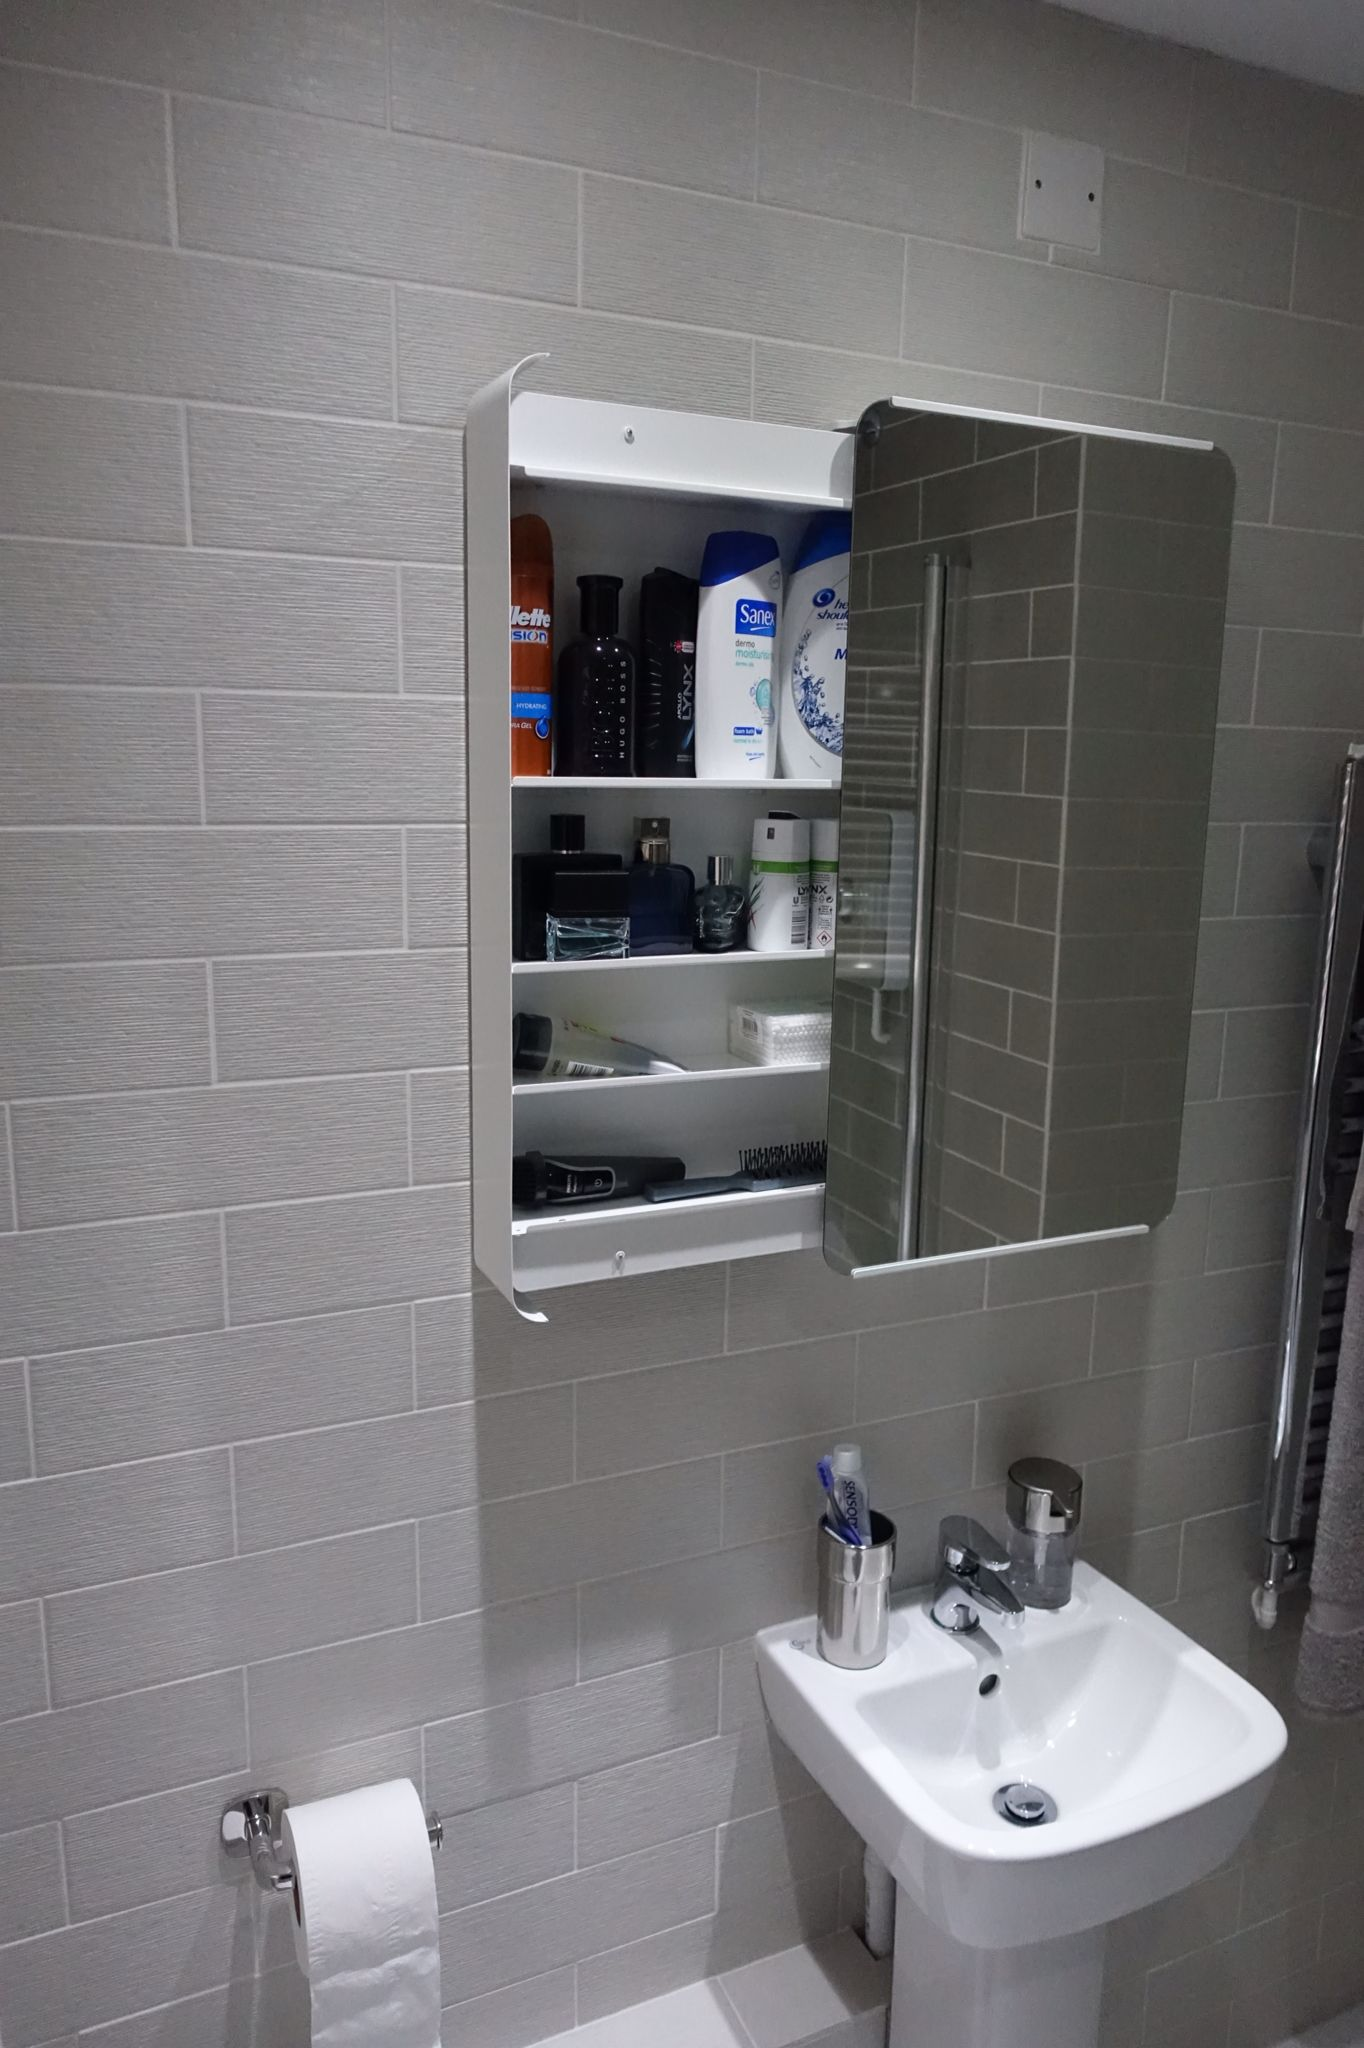 The Bathroom Cabinet Was Purchased From Ikea Brickan Mirror Cabinet It 39 S A Great Design